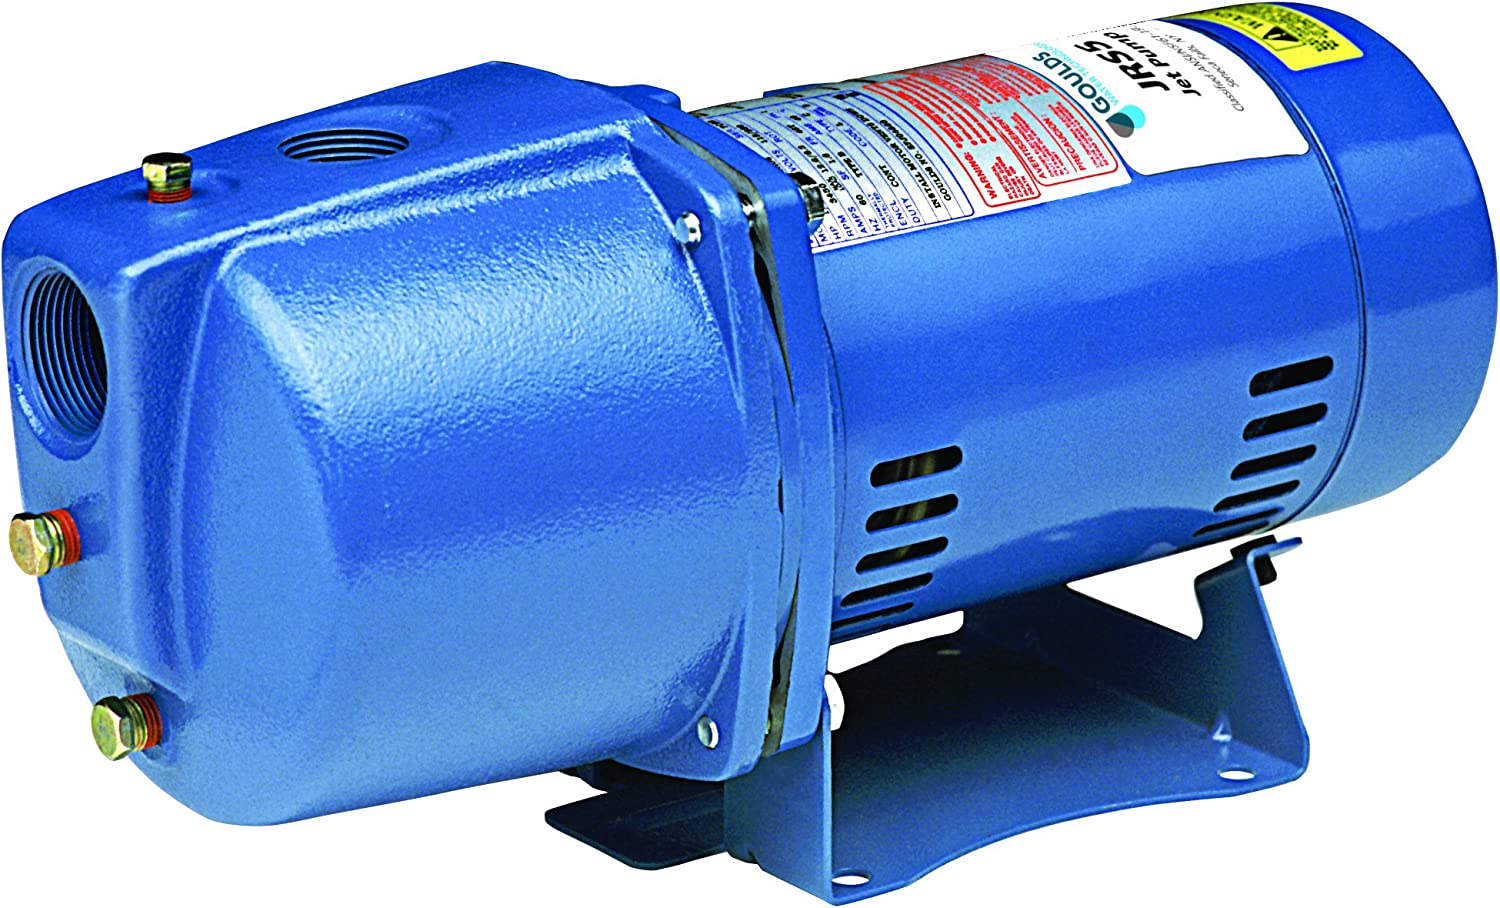 Goulds JRS10 Shallow Water Well Jet Pump, 1 HP, Single Phase, 115/230 V